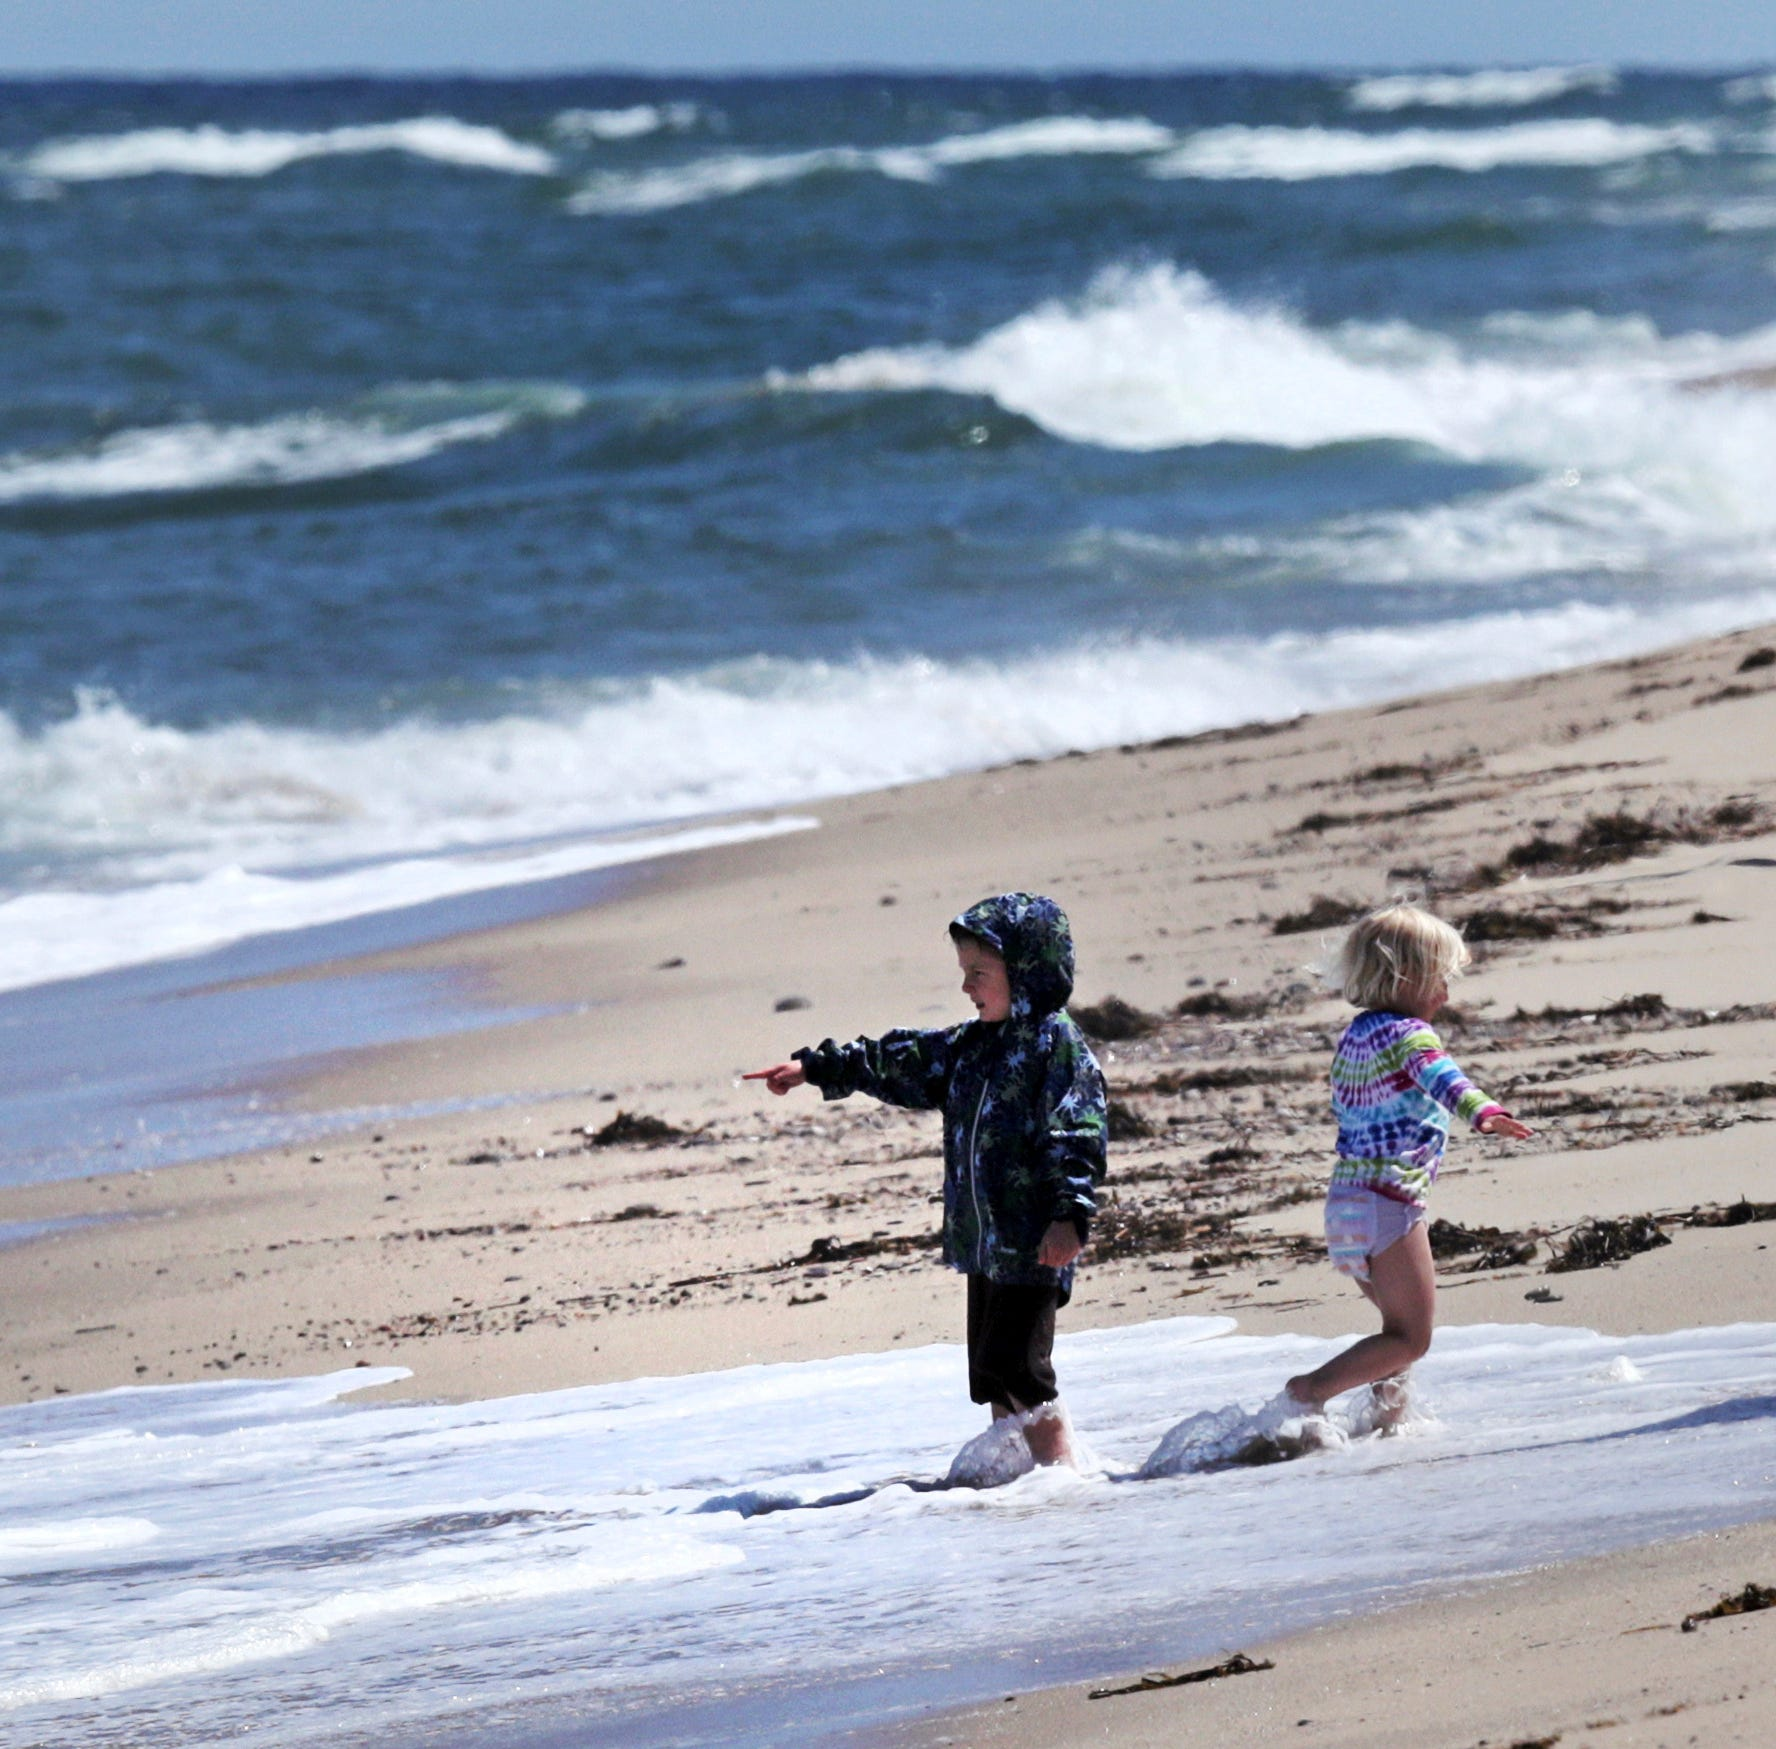 Shark attacks overshadow Cape Cod tourist season